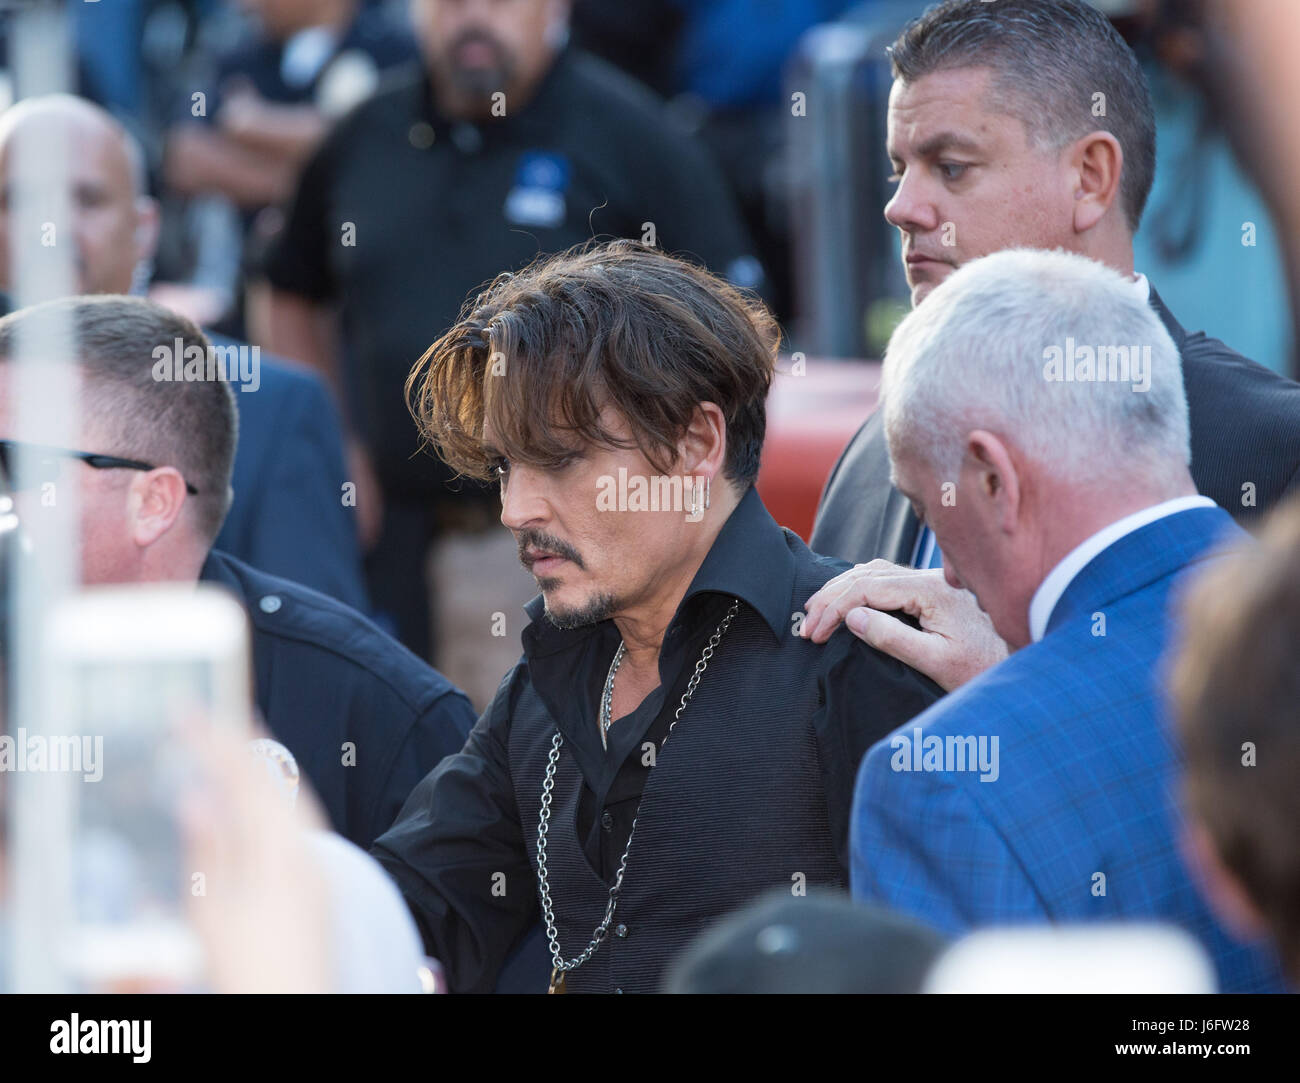 Actor Johnny Depp attends the premiere of Disney's 'Pirates Of The Caribbean: Dead Men Tell No Tales' - Stock Image